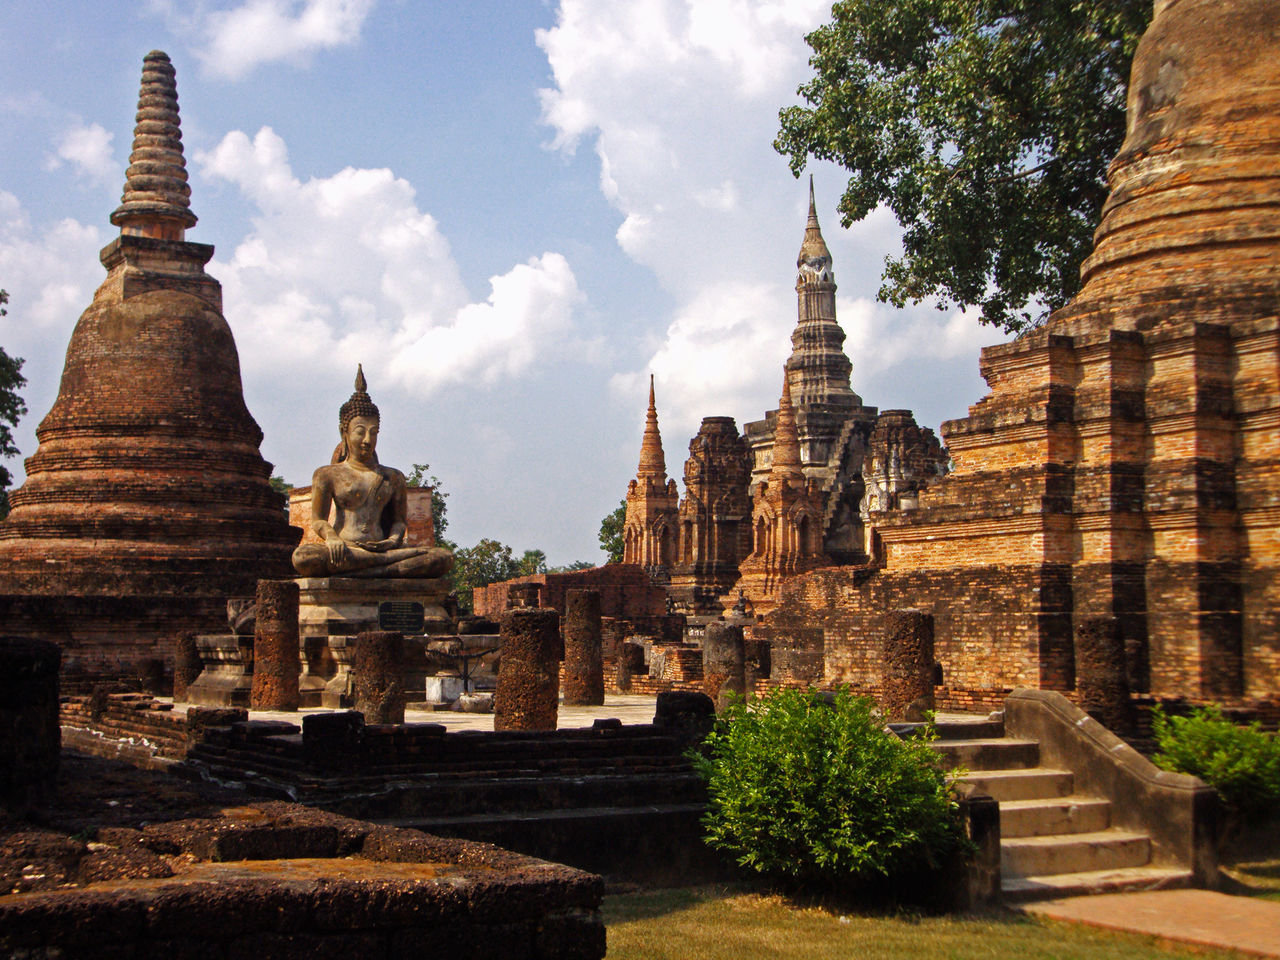 Ancient Ancient Civilization Architecture Buddha Buddha Statue Buddhism Building Exterior Famous Place Heritage History Old Outdoors Place Of Worship Religion Spirituality Stupa Sukhothai Sukhothaihistoricalpark Temple Temple - Building The Past Tourism Travel Destinations